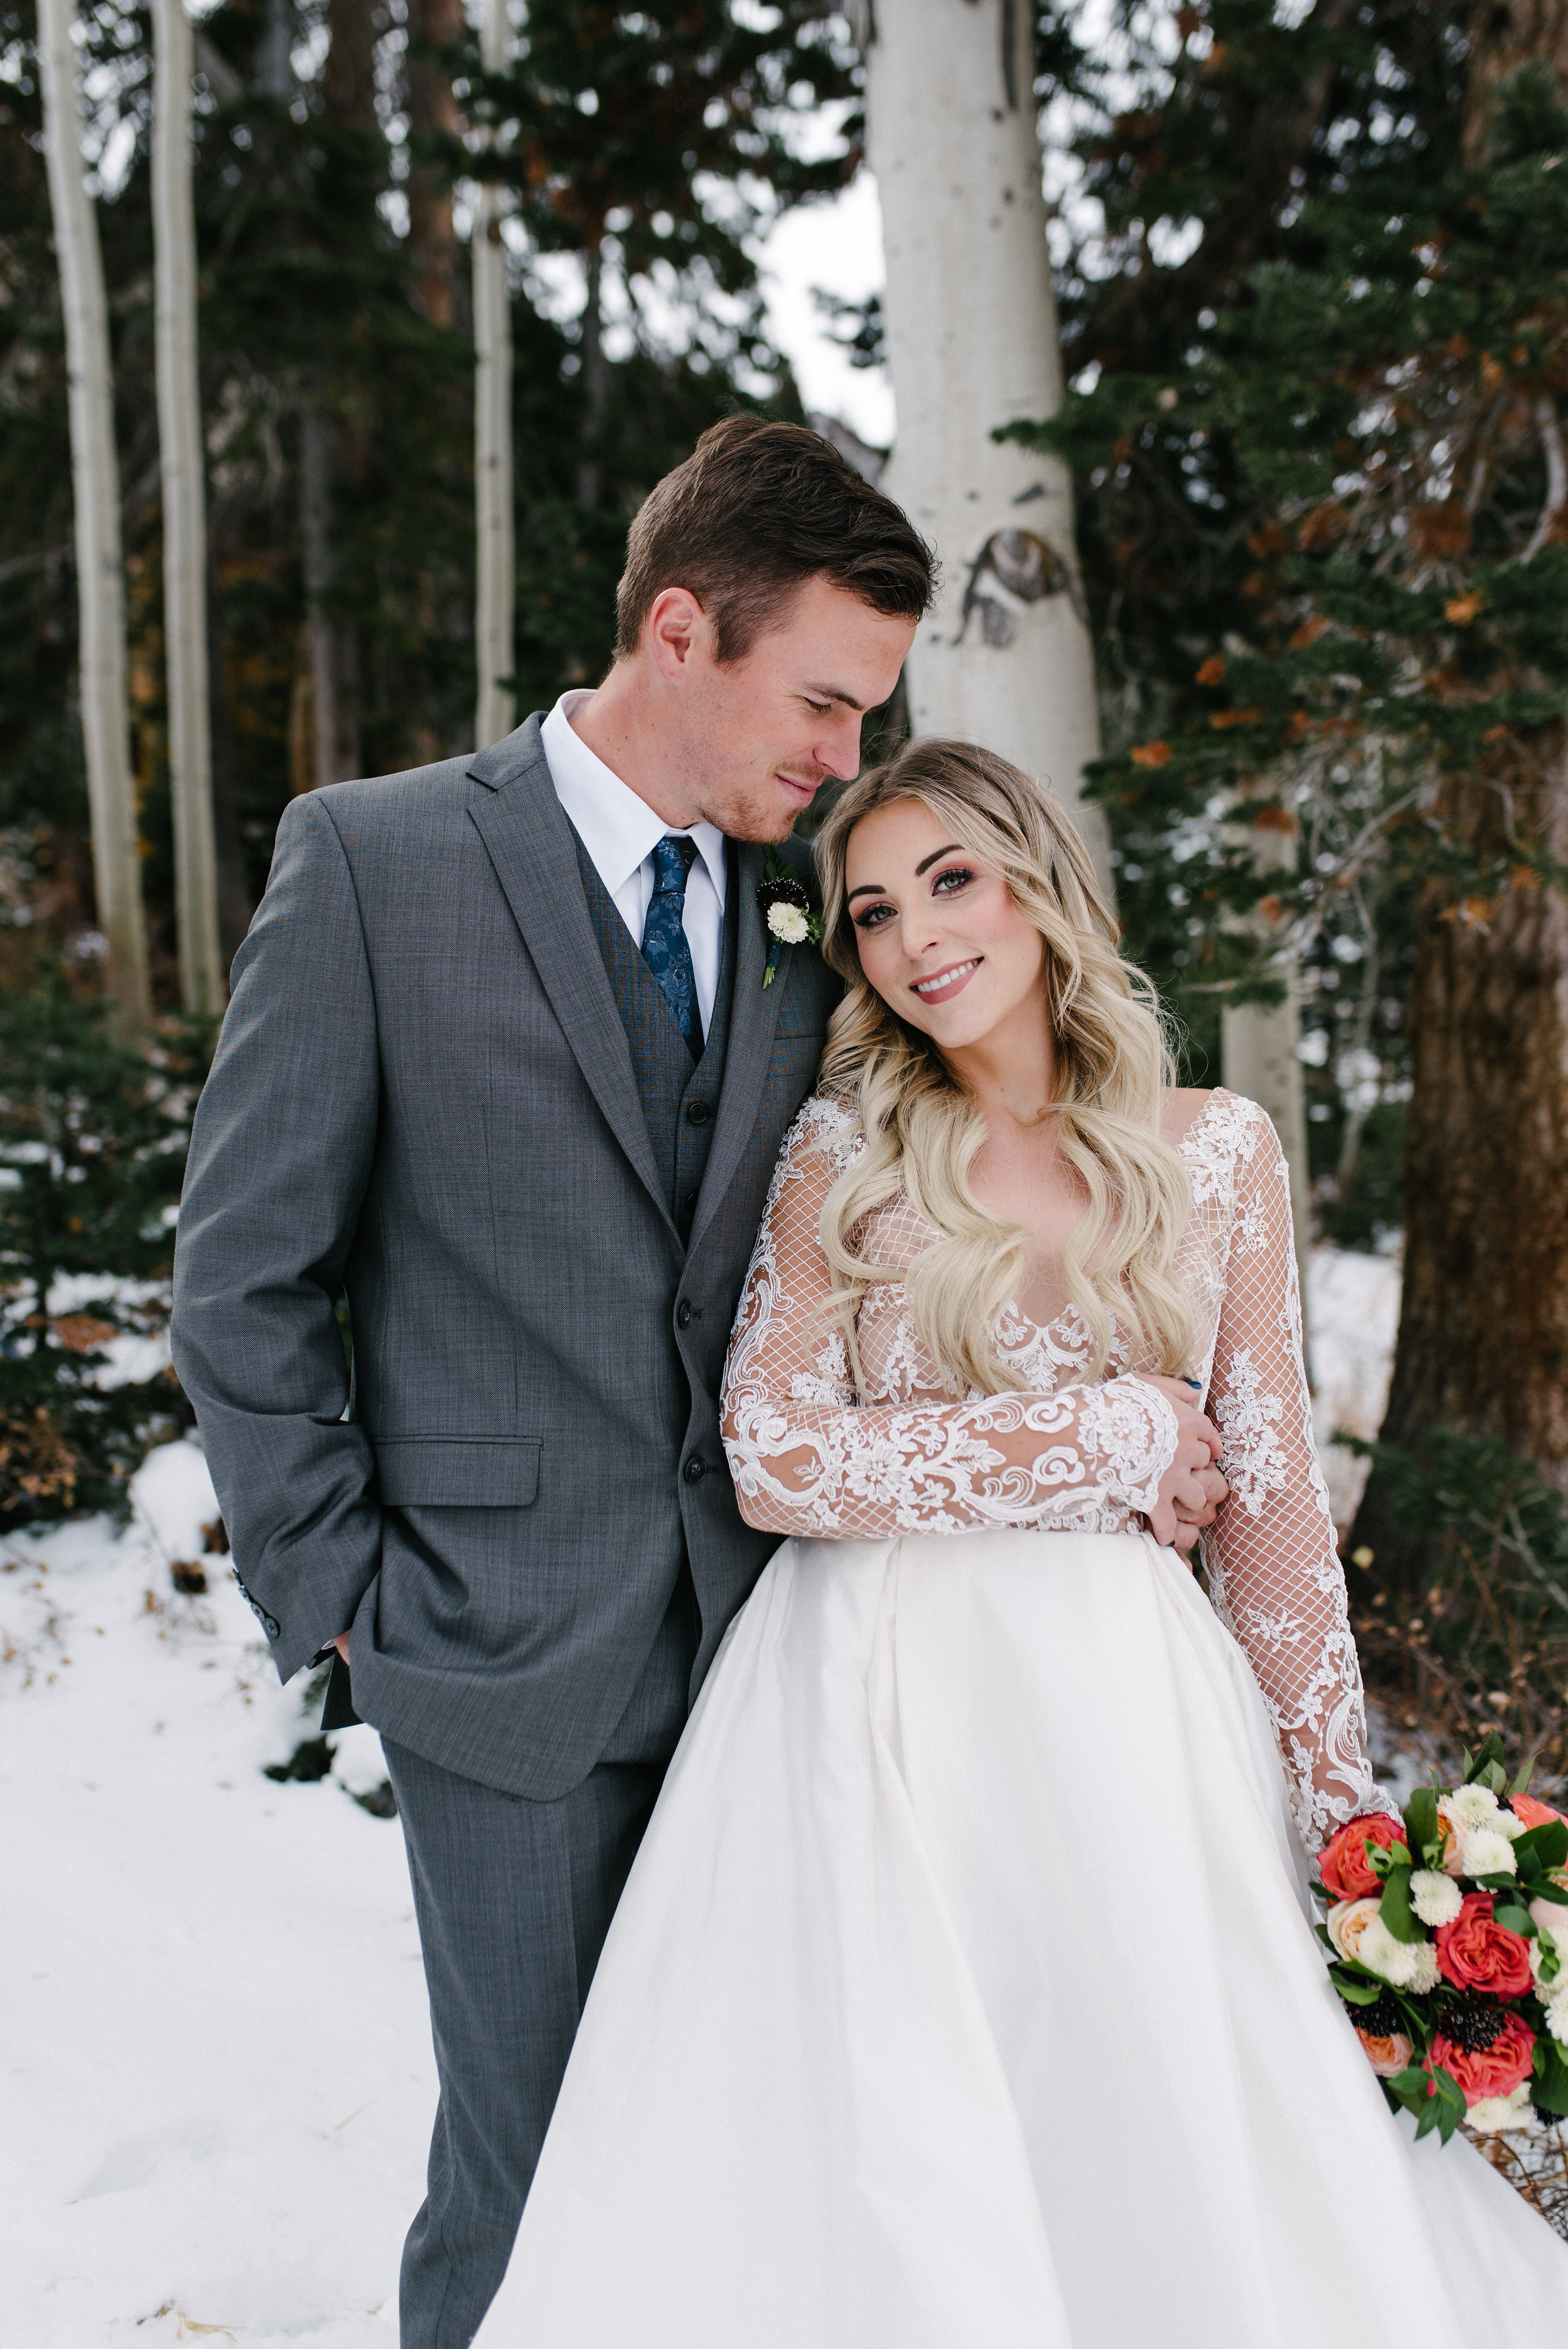 Have We Convinced You Yet Well If Here Are A Few Thoughts For Your Chilly Celebration First Things Warmth Just Because Its Cold Outside: Mountain Themed Wedding Dress At Websimilar.org